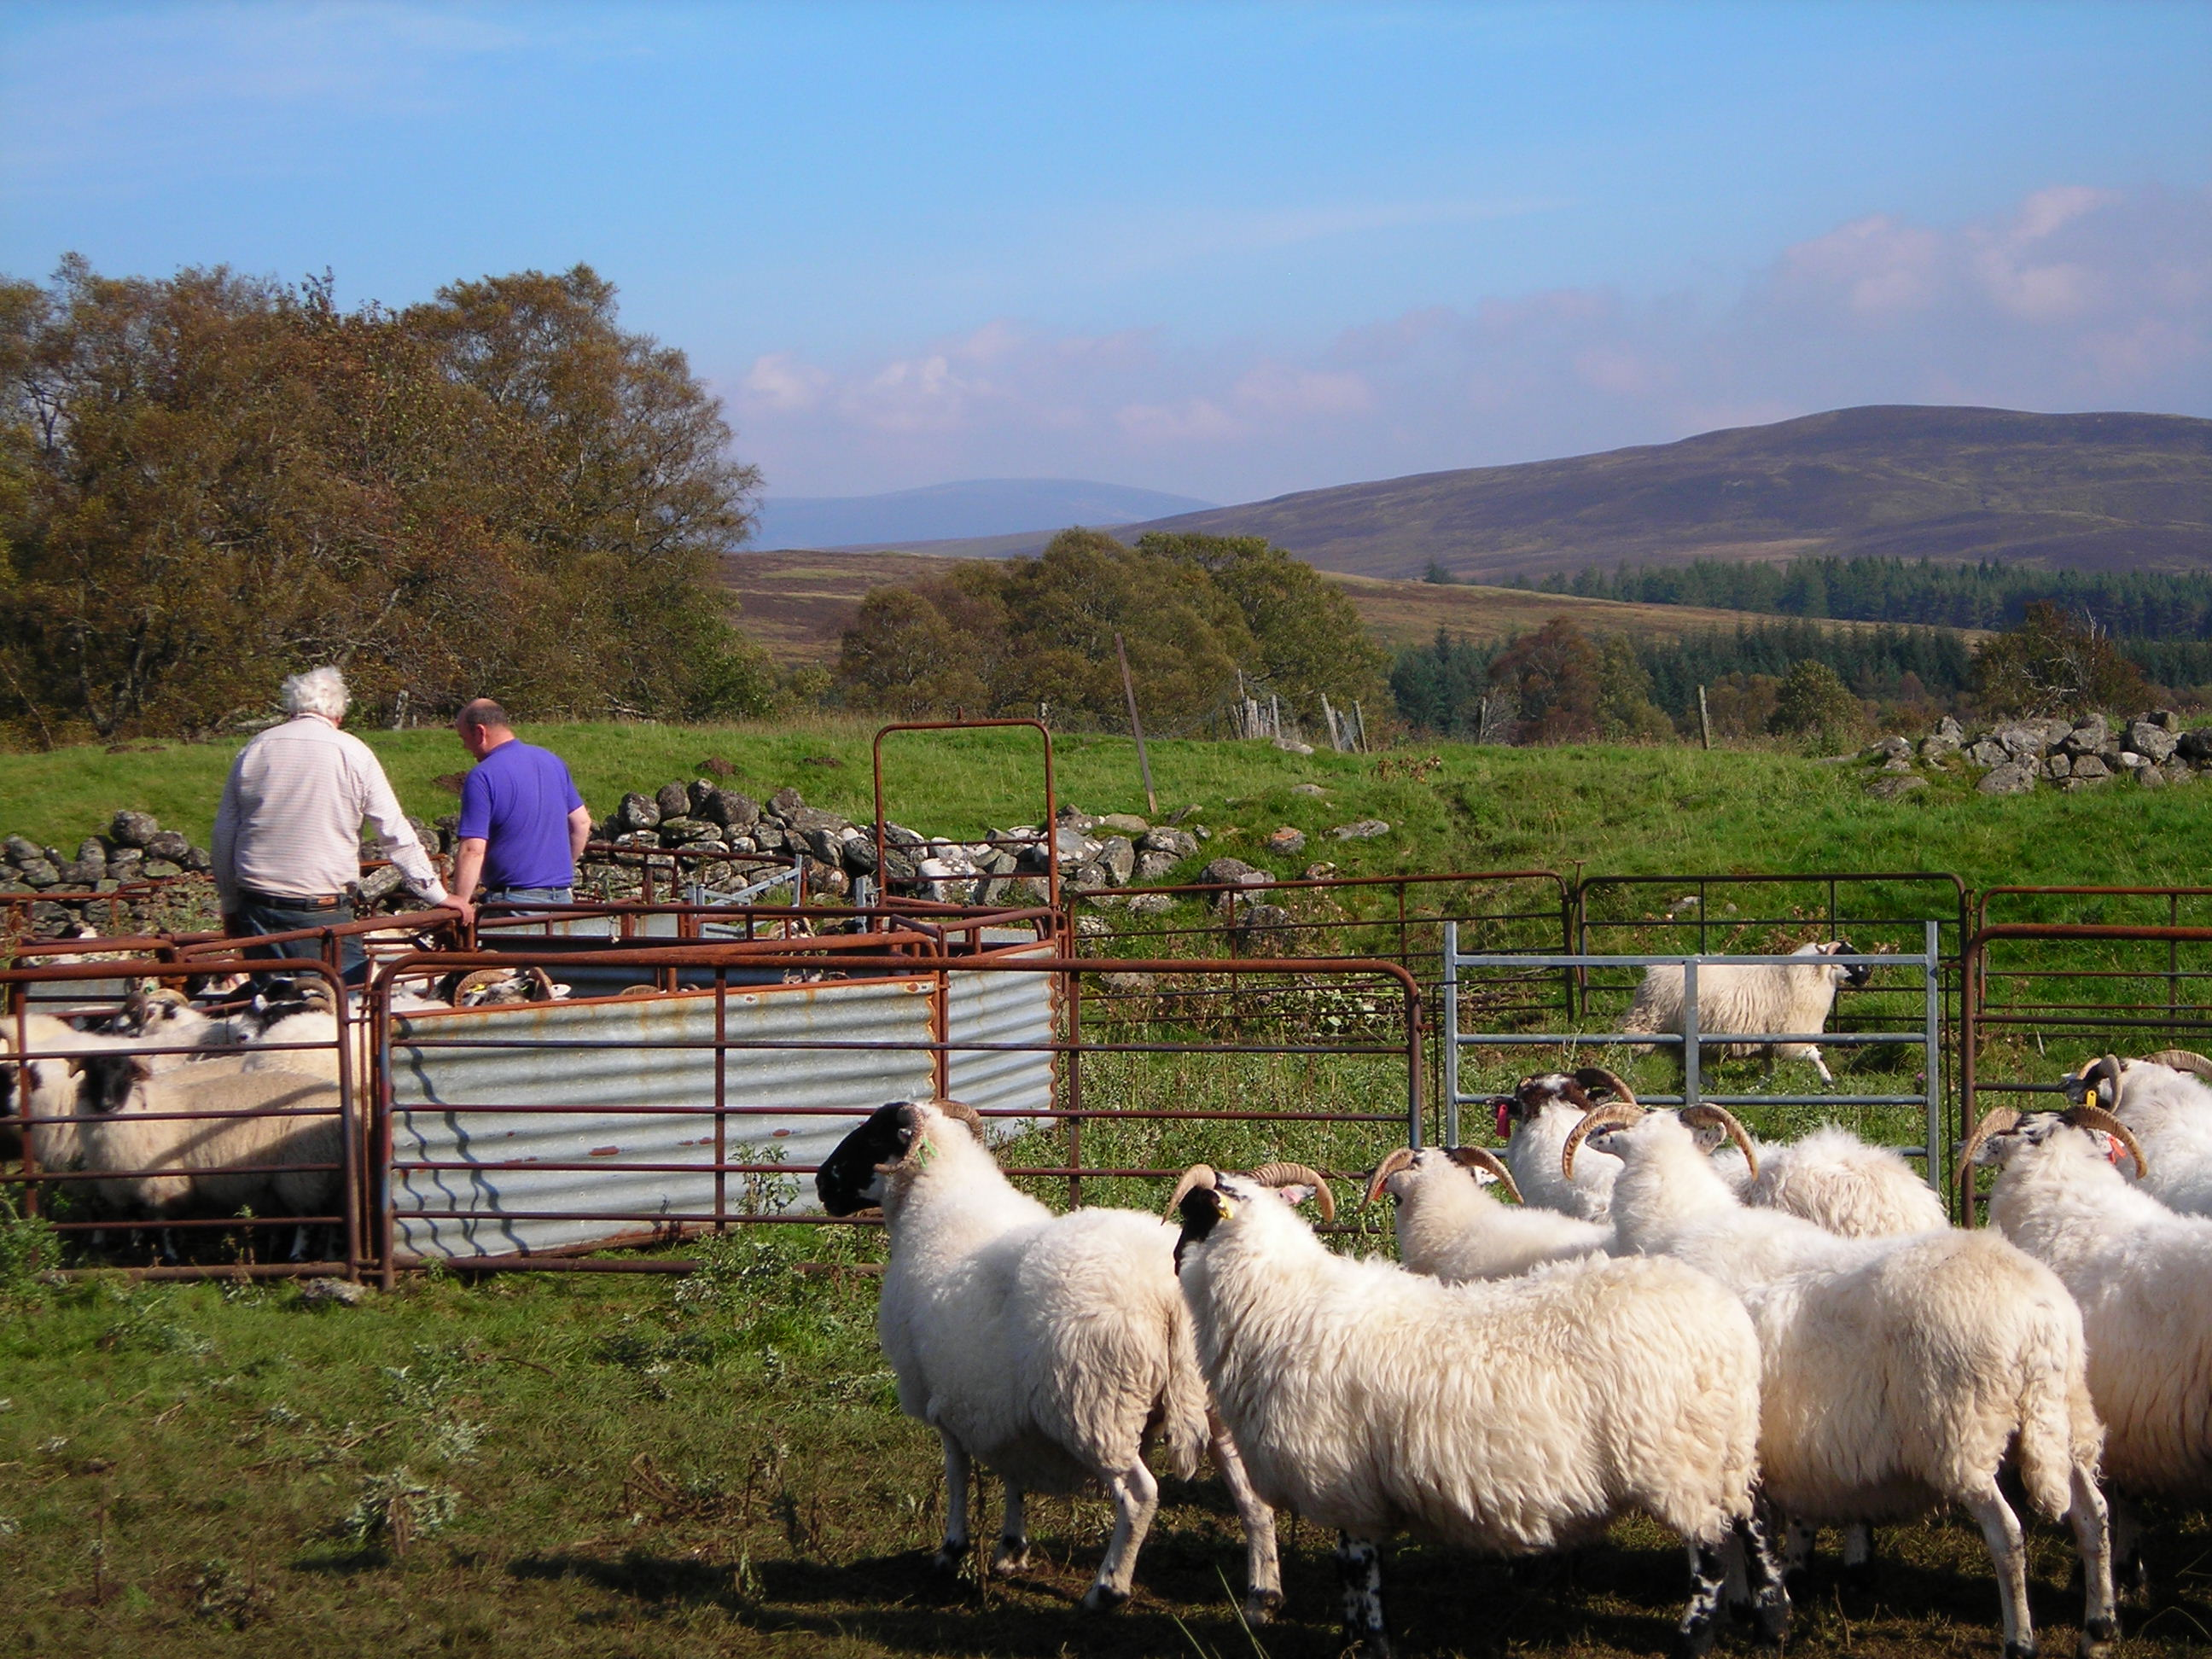 STFA welcomes the latest release of public sector land for the creation of starter farms